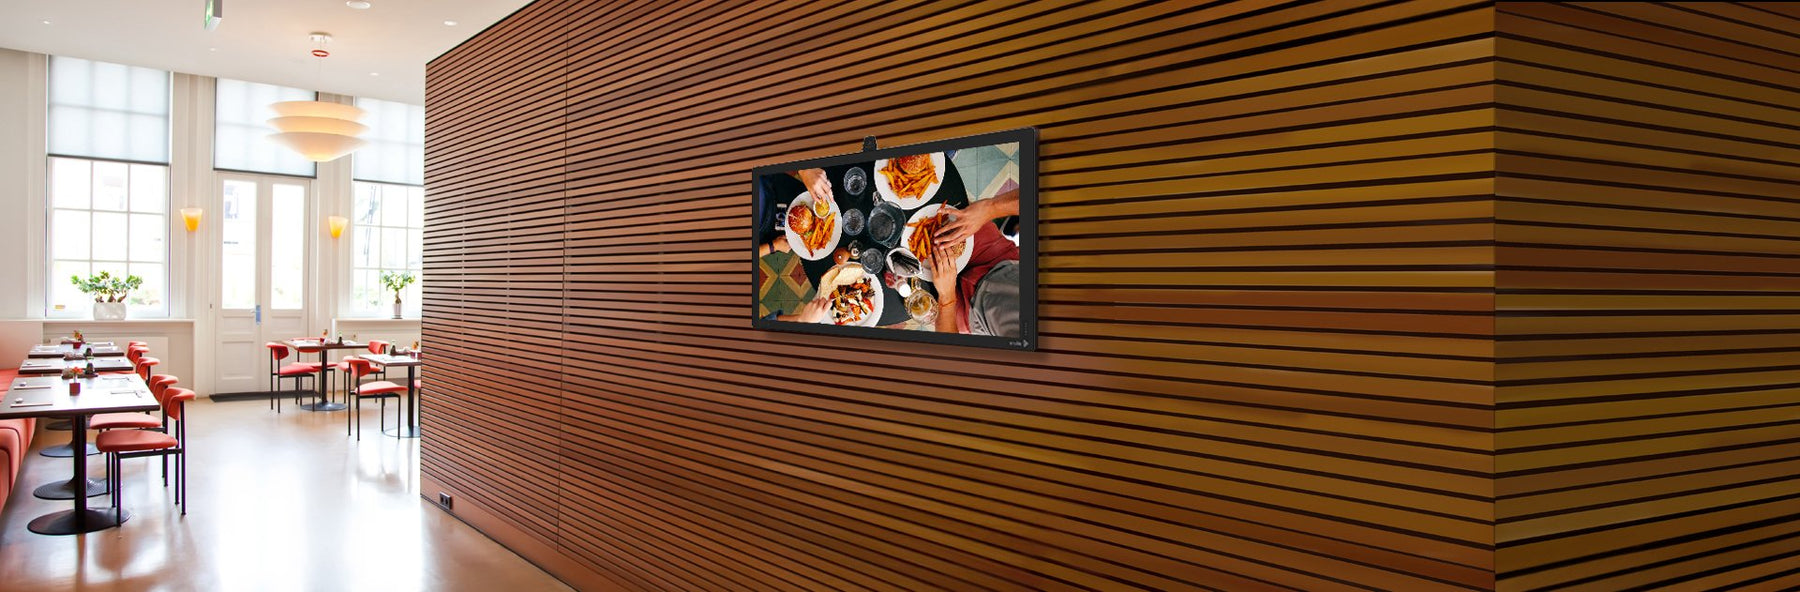 Content Tips to Use Digital Signage in Restaurant